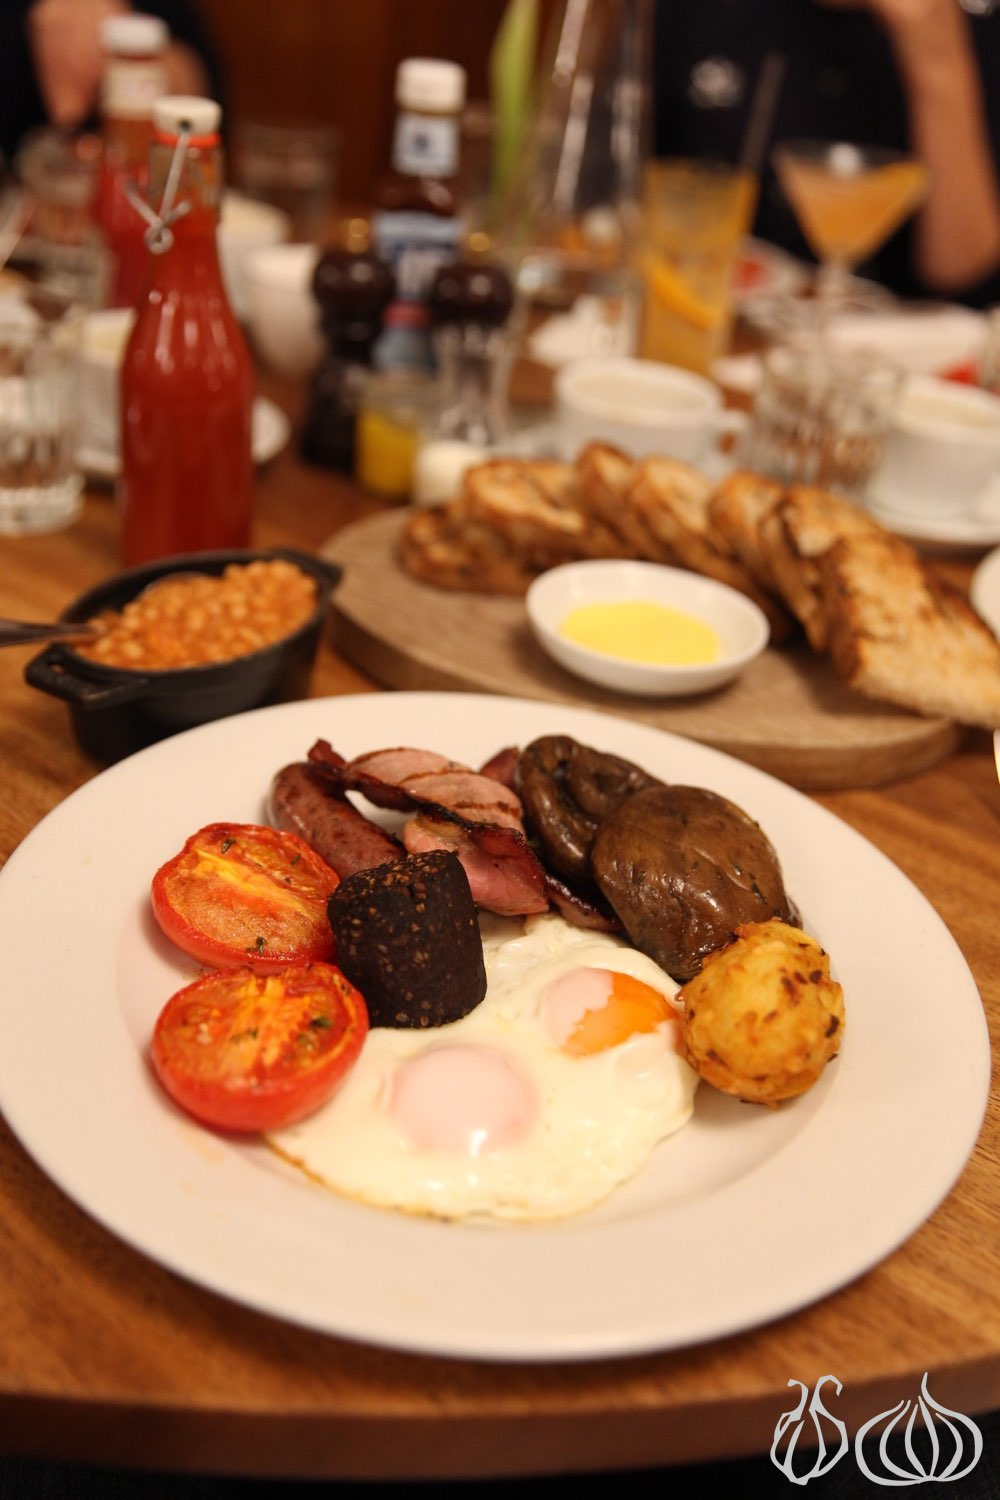 hawksmoor-english-breakfast-london192015-06-19-05-53-172017-06-25-09-13-58